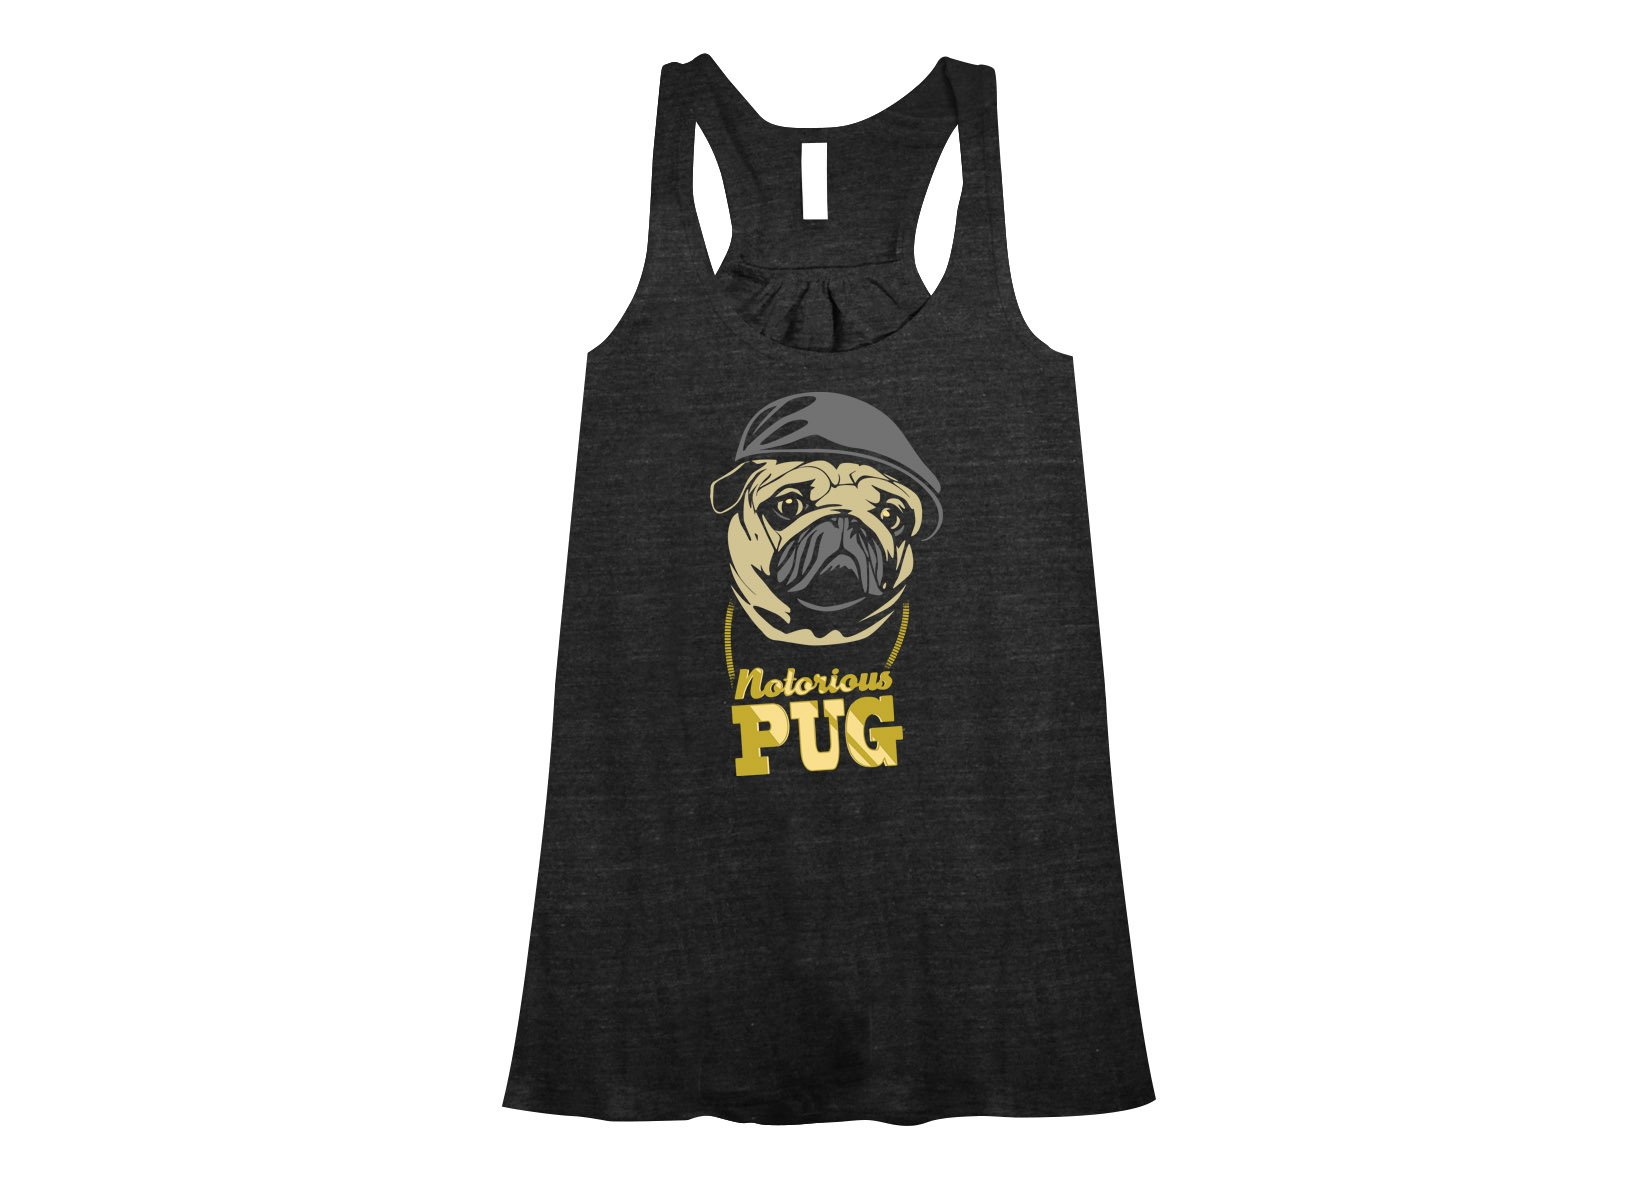 Notorious PUG on Womens Tanks T-Shirt